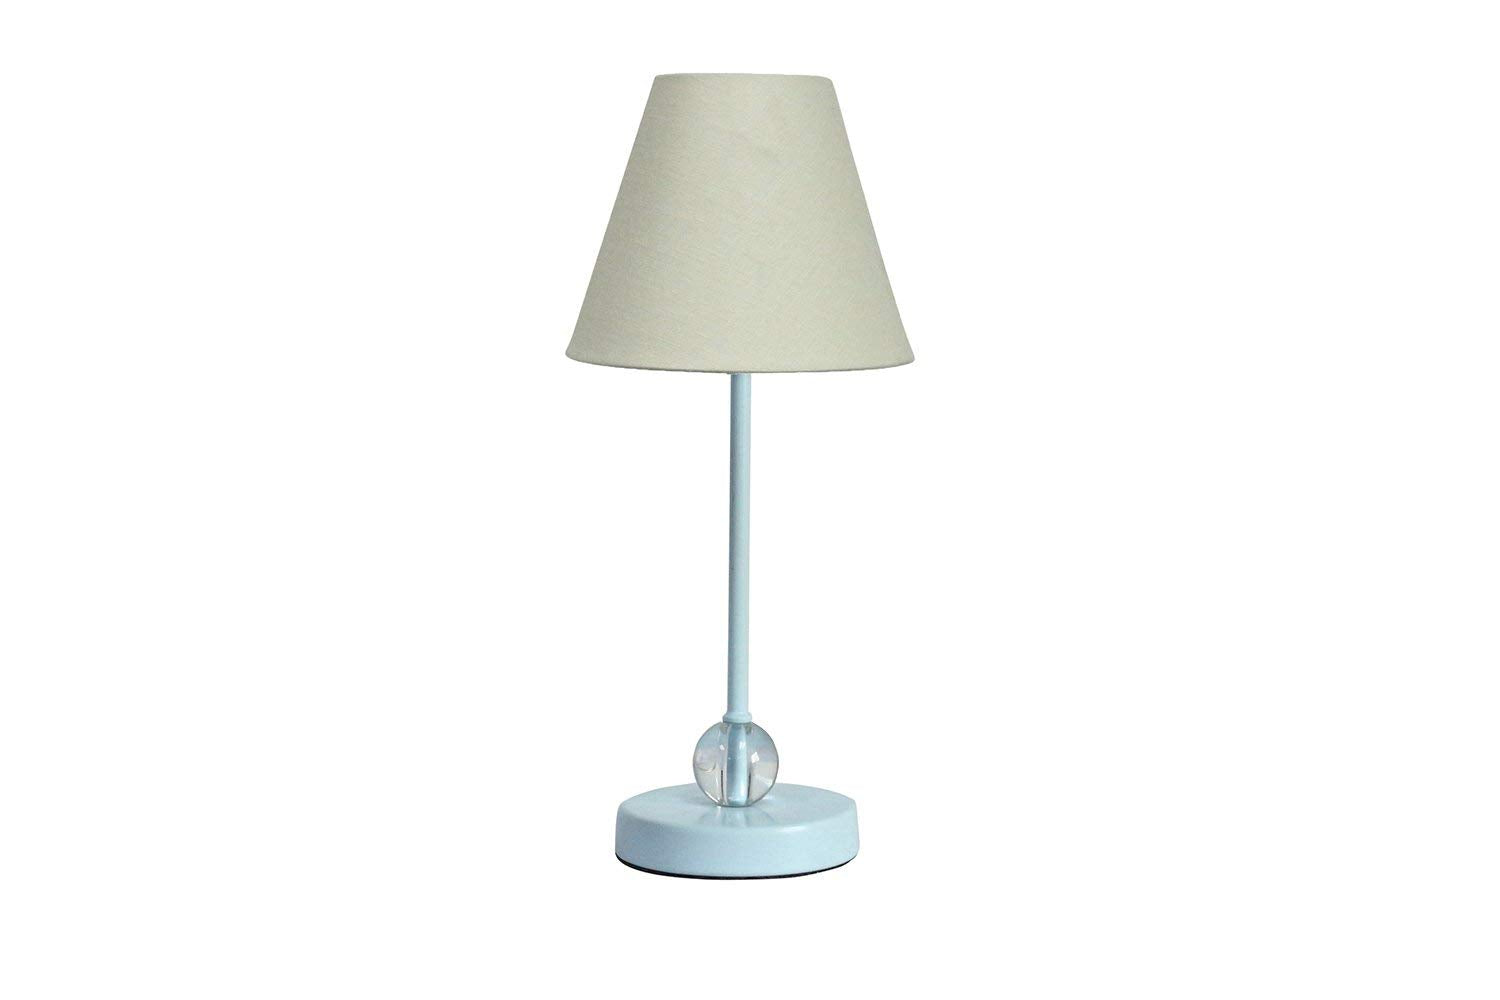 Chelsea Mini Accent Lamp with Eggshell Linen Lamp Shade